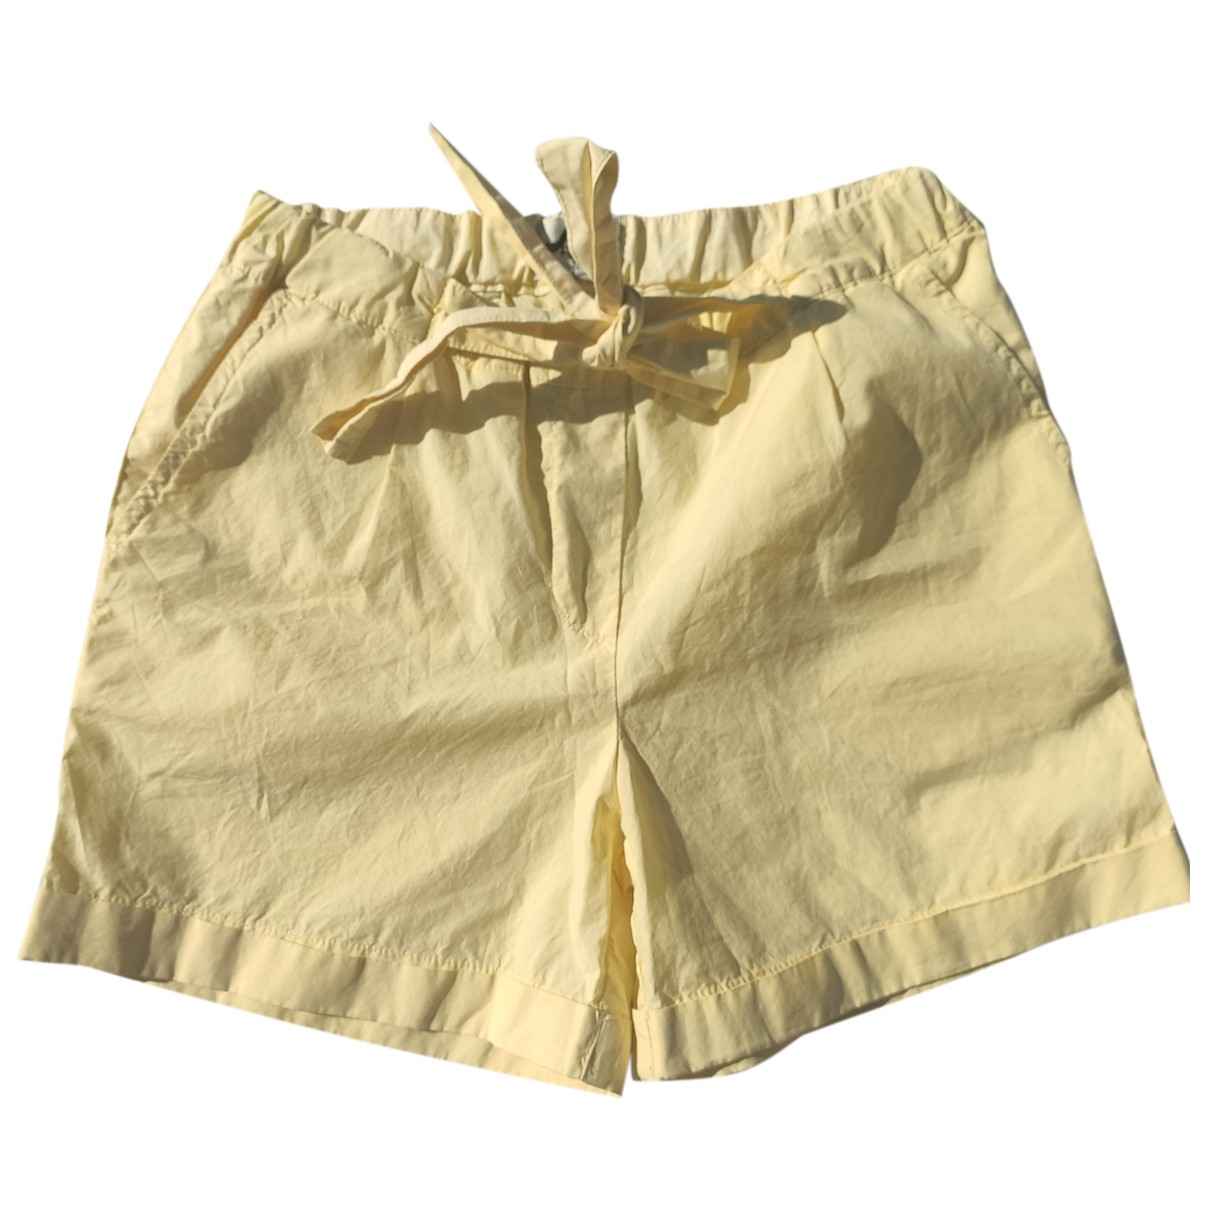 Fendi N Yellow Cotton Shorts for Kids 8 years - up to 128cm FR